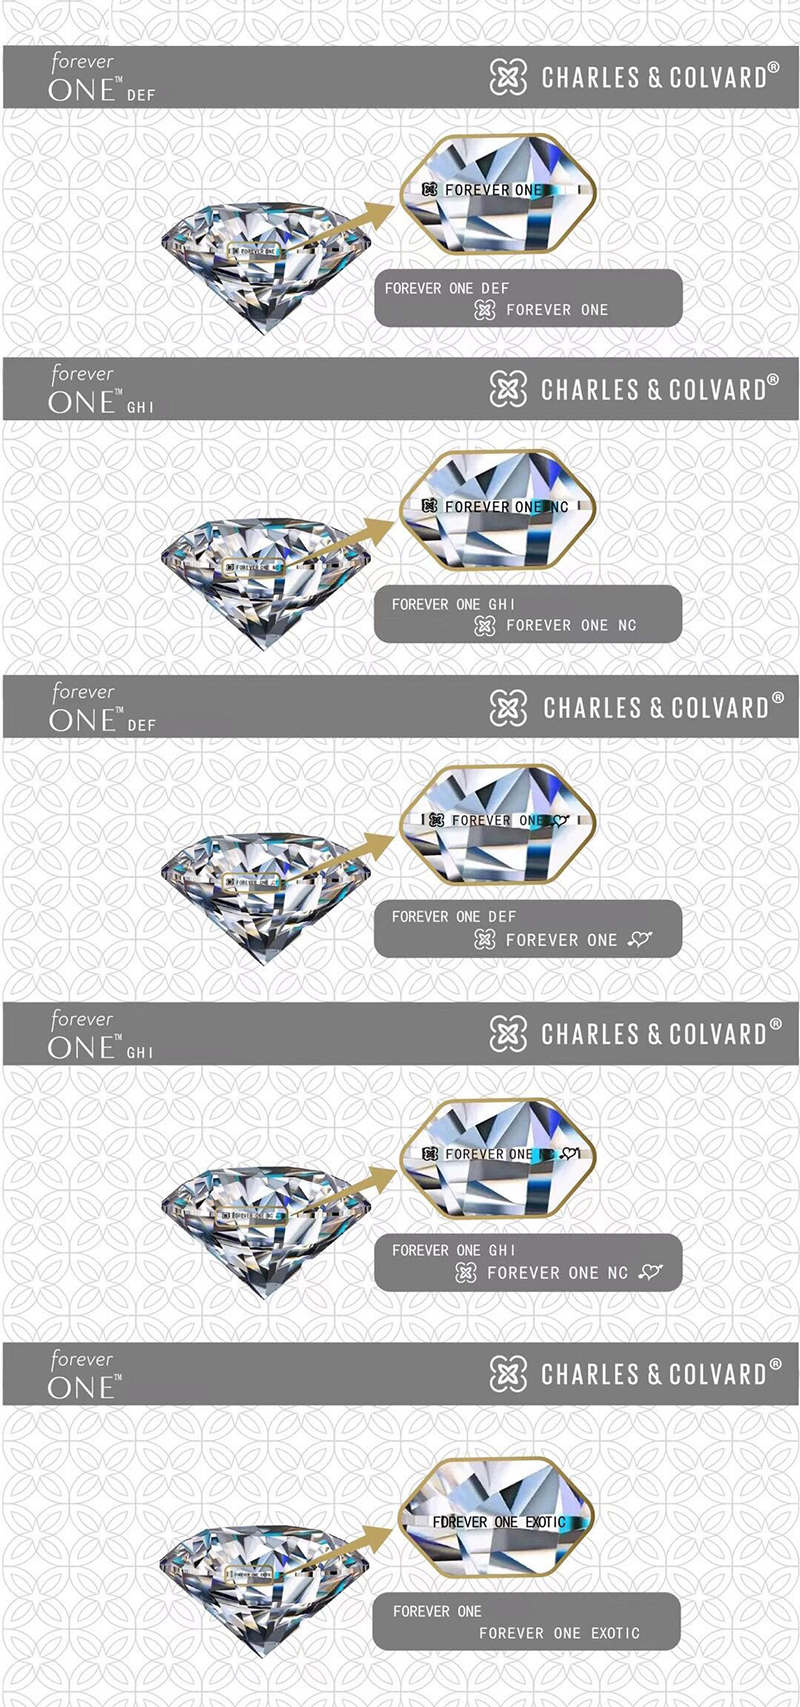 Color: 2.6-Crystal-200 Calvas 200pcs 0.8~4mm Or Mix Sizes 5A White Round Cut Cubic Zirconia Silver Color for Woman Jewelry Loose Cubic Zirconia DIY CZ Gems